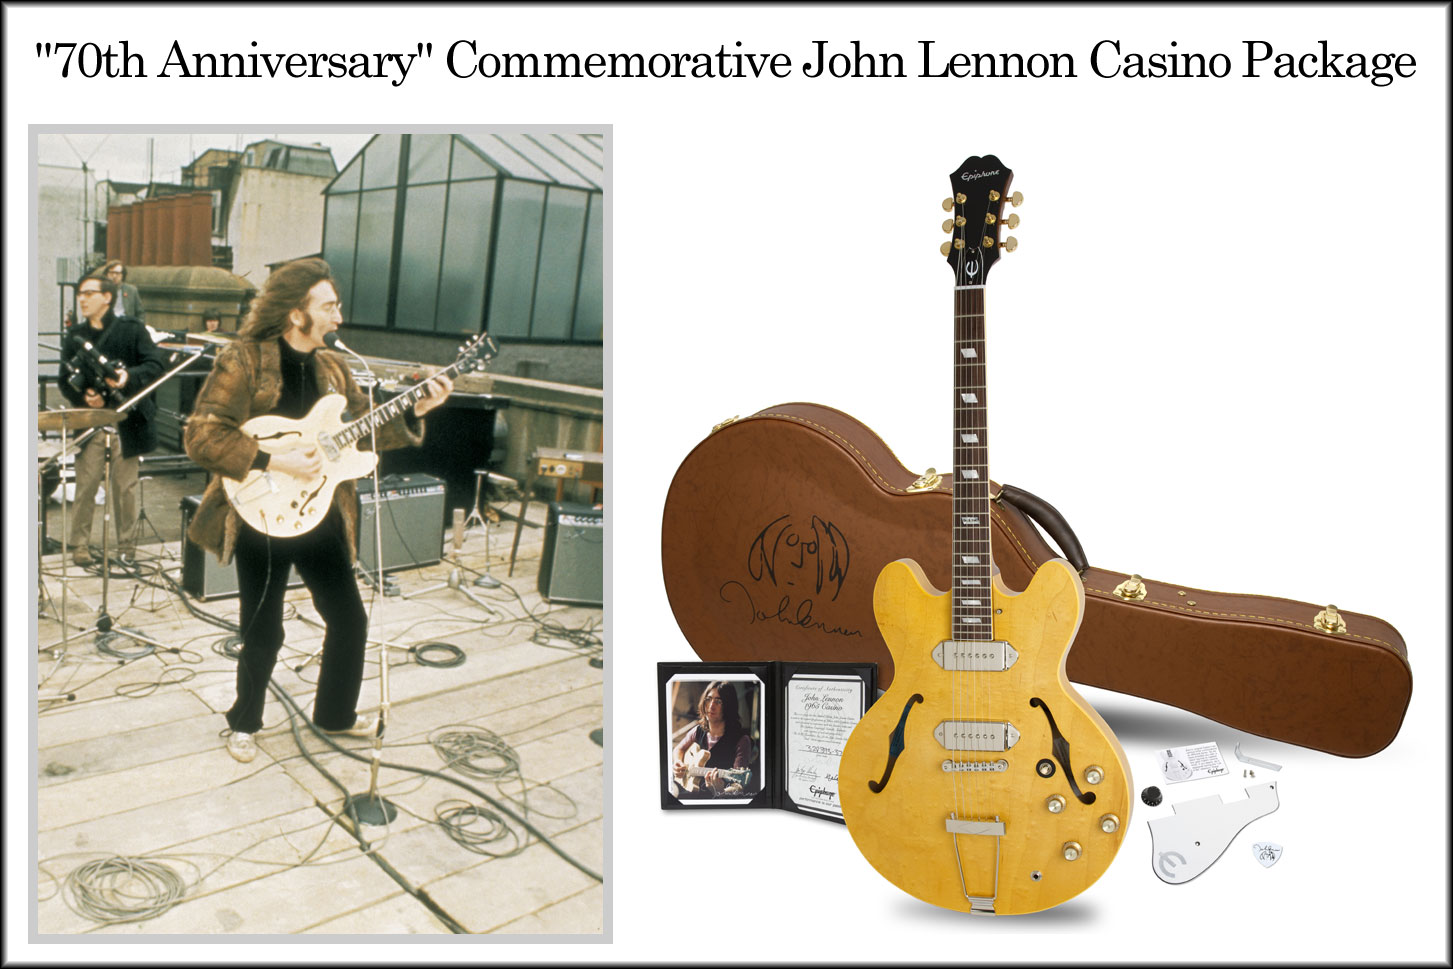 John lennon with casino cherokee casino promotions